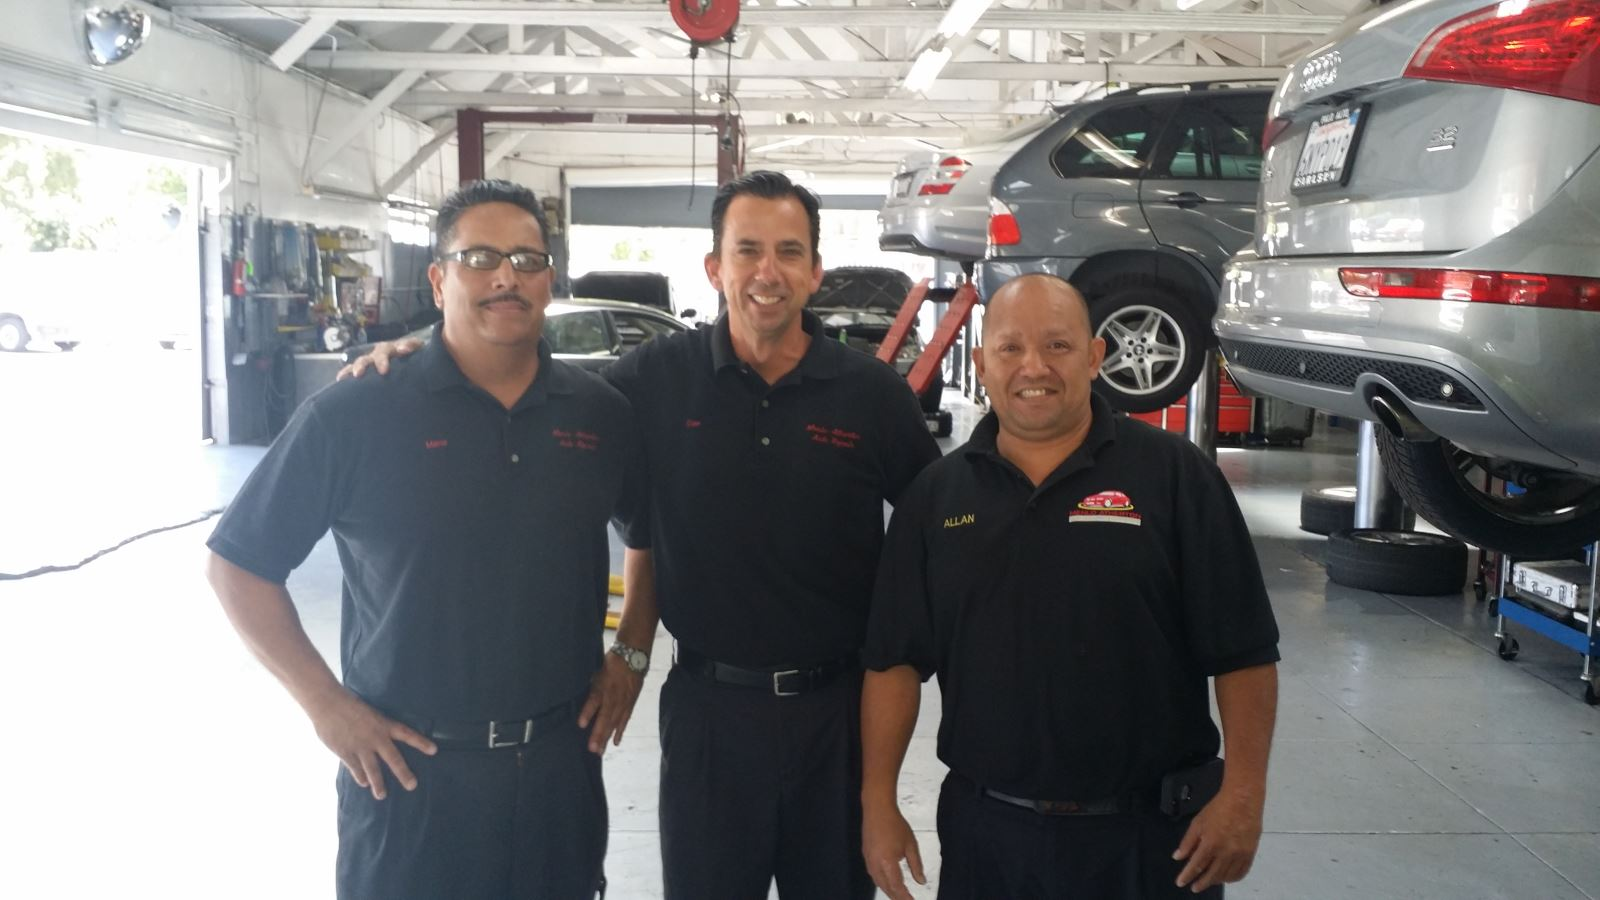 Managers: Left to Right - Mario, Dan, & Allan | Menlo Atherton Auto Repair